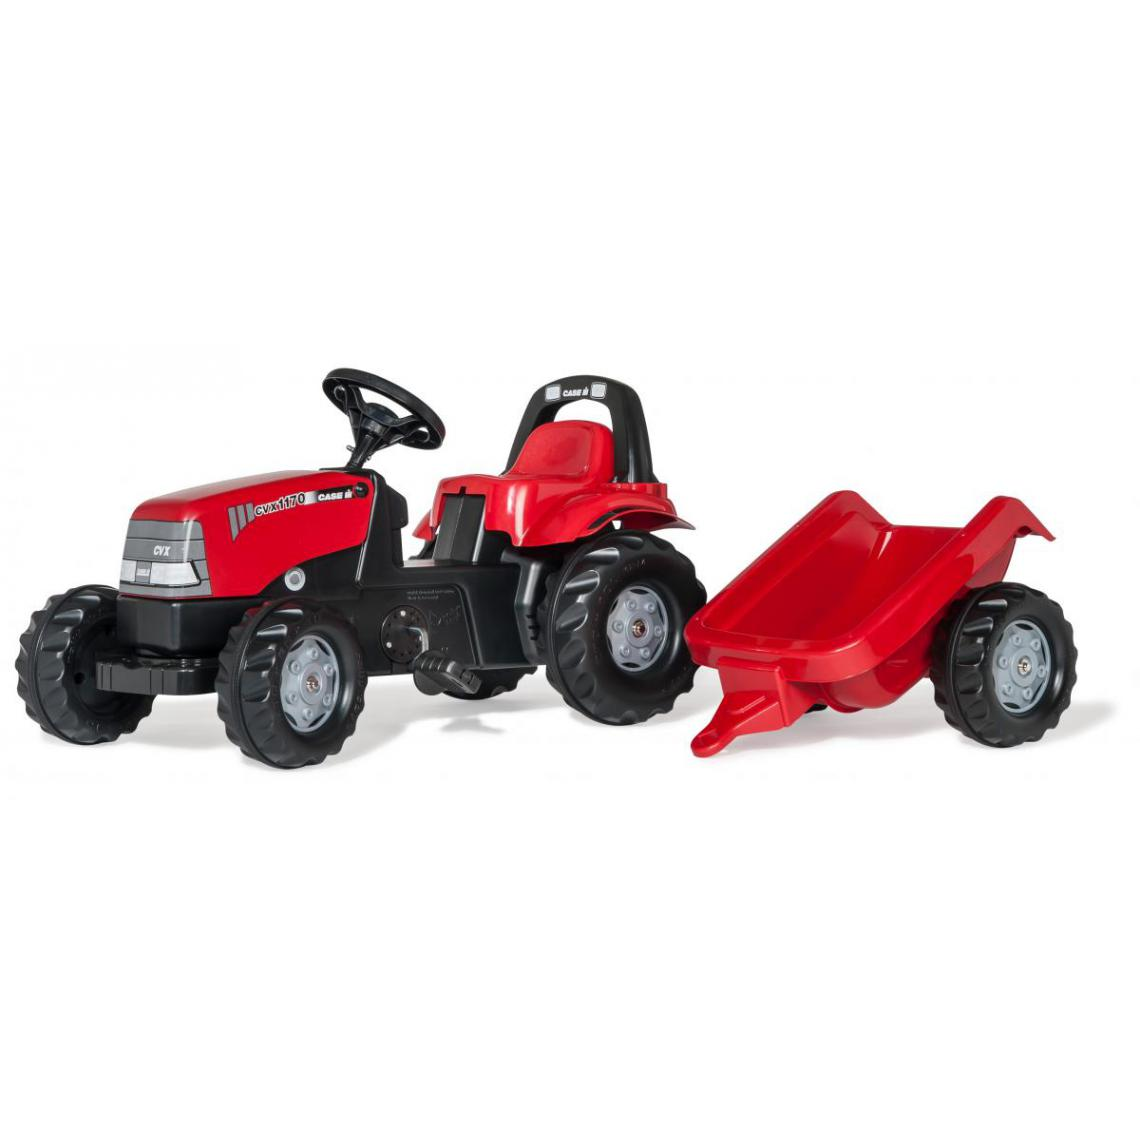 Rolly Toys Rolly Toys Tracteur a Pedales + Remorque rollyKid 1170 CVX